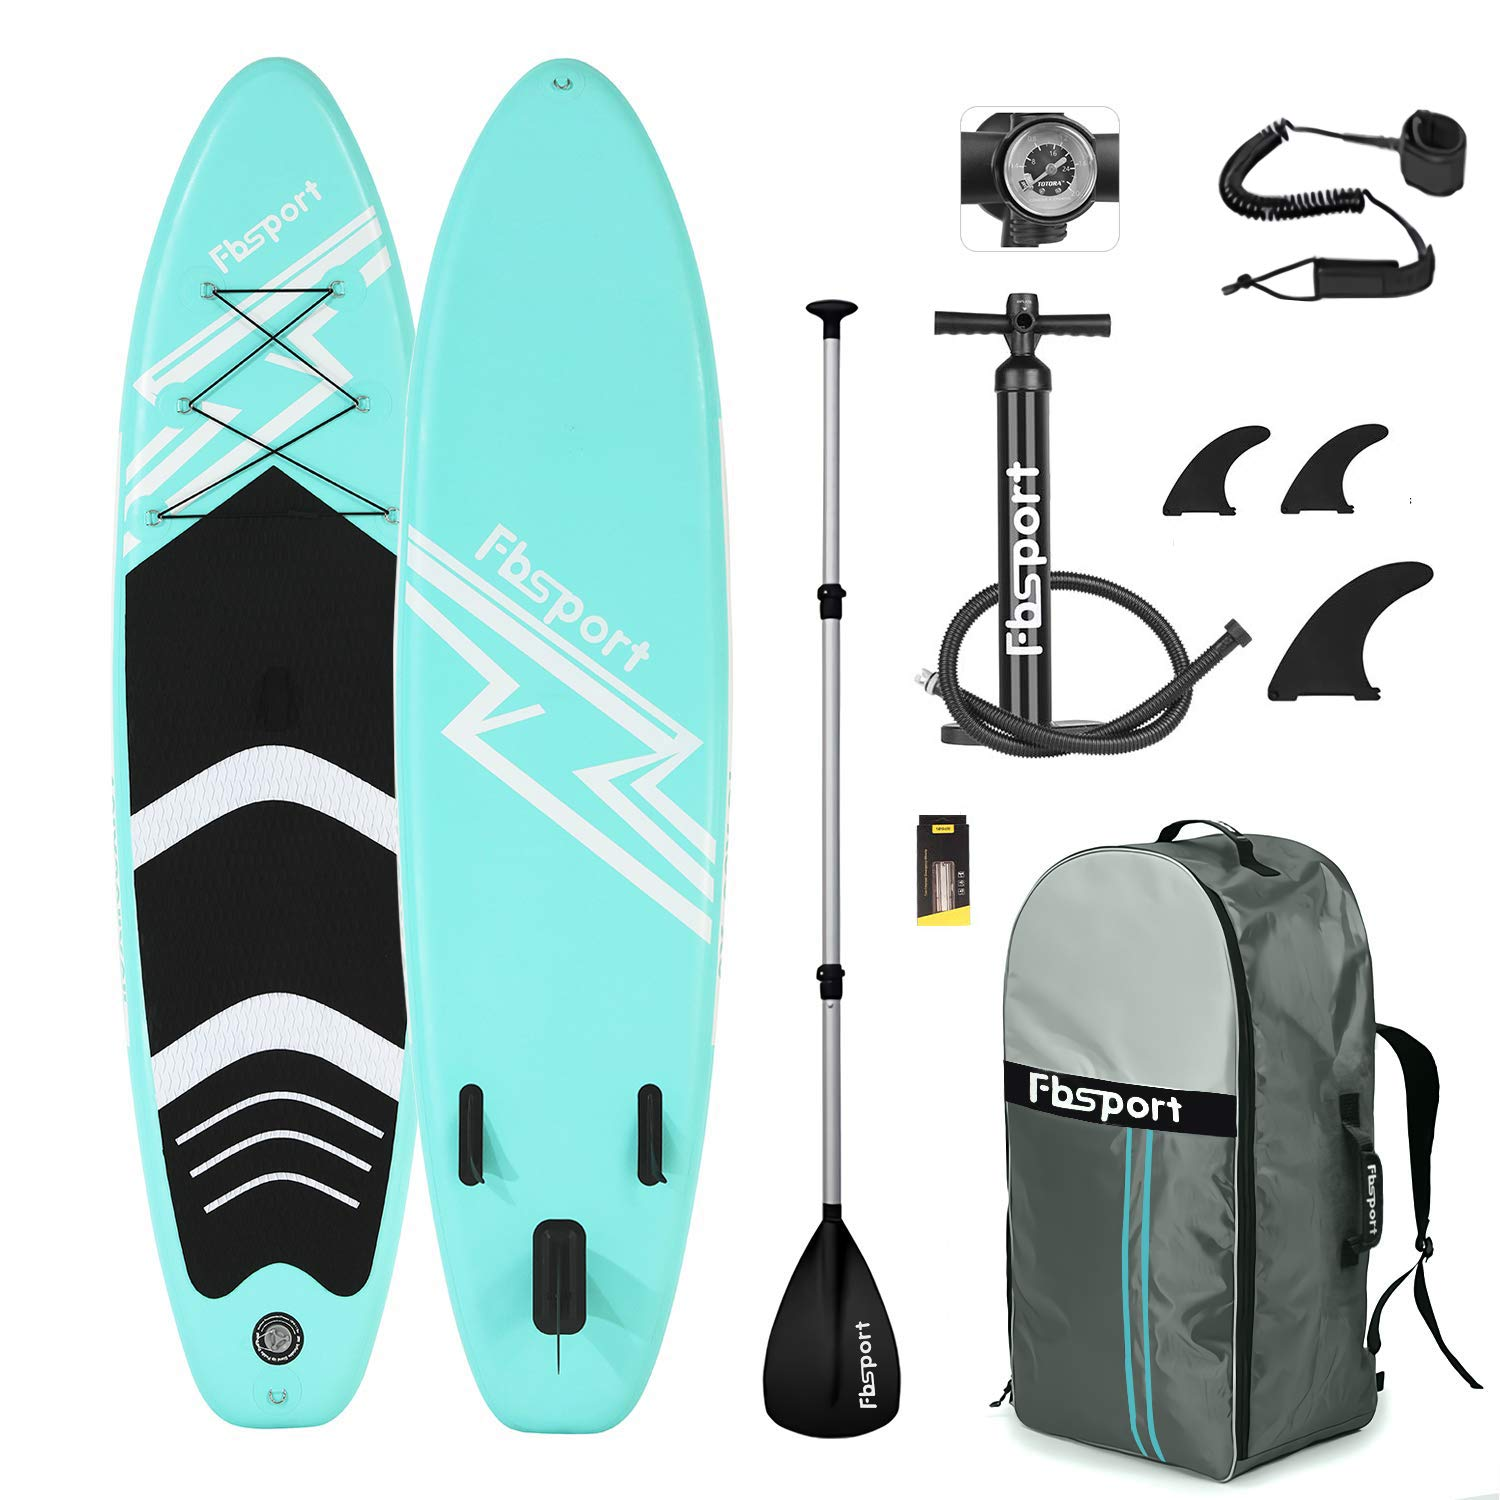 Premium Inflatable Stand Up Paddle Board (6 inches Thick) with Durable SUP Accessories & Carry Bag | Wide Stance, Surf Control, Non-Slip Deck, Leash, Paddle and Pump , Standing Boat for Youth & Adult by FBSPORT